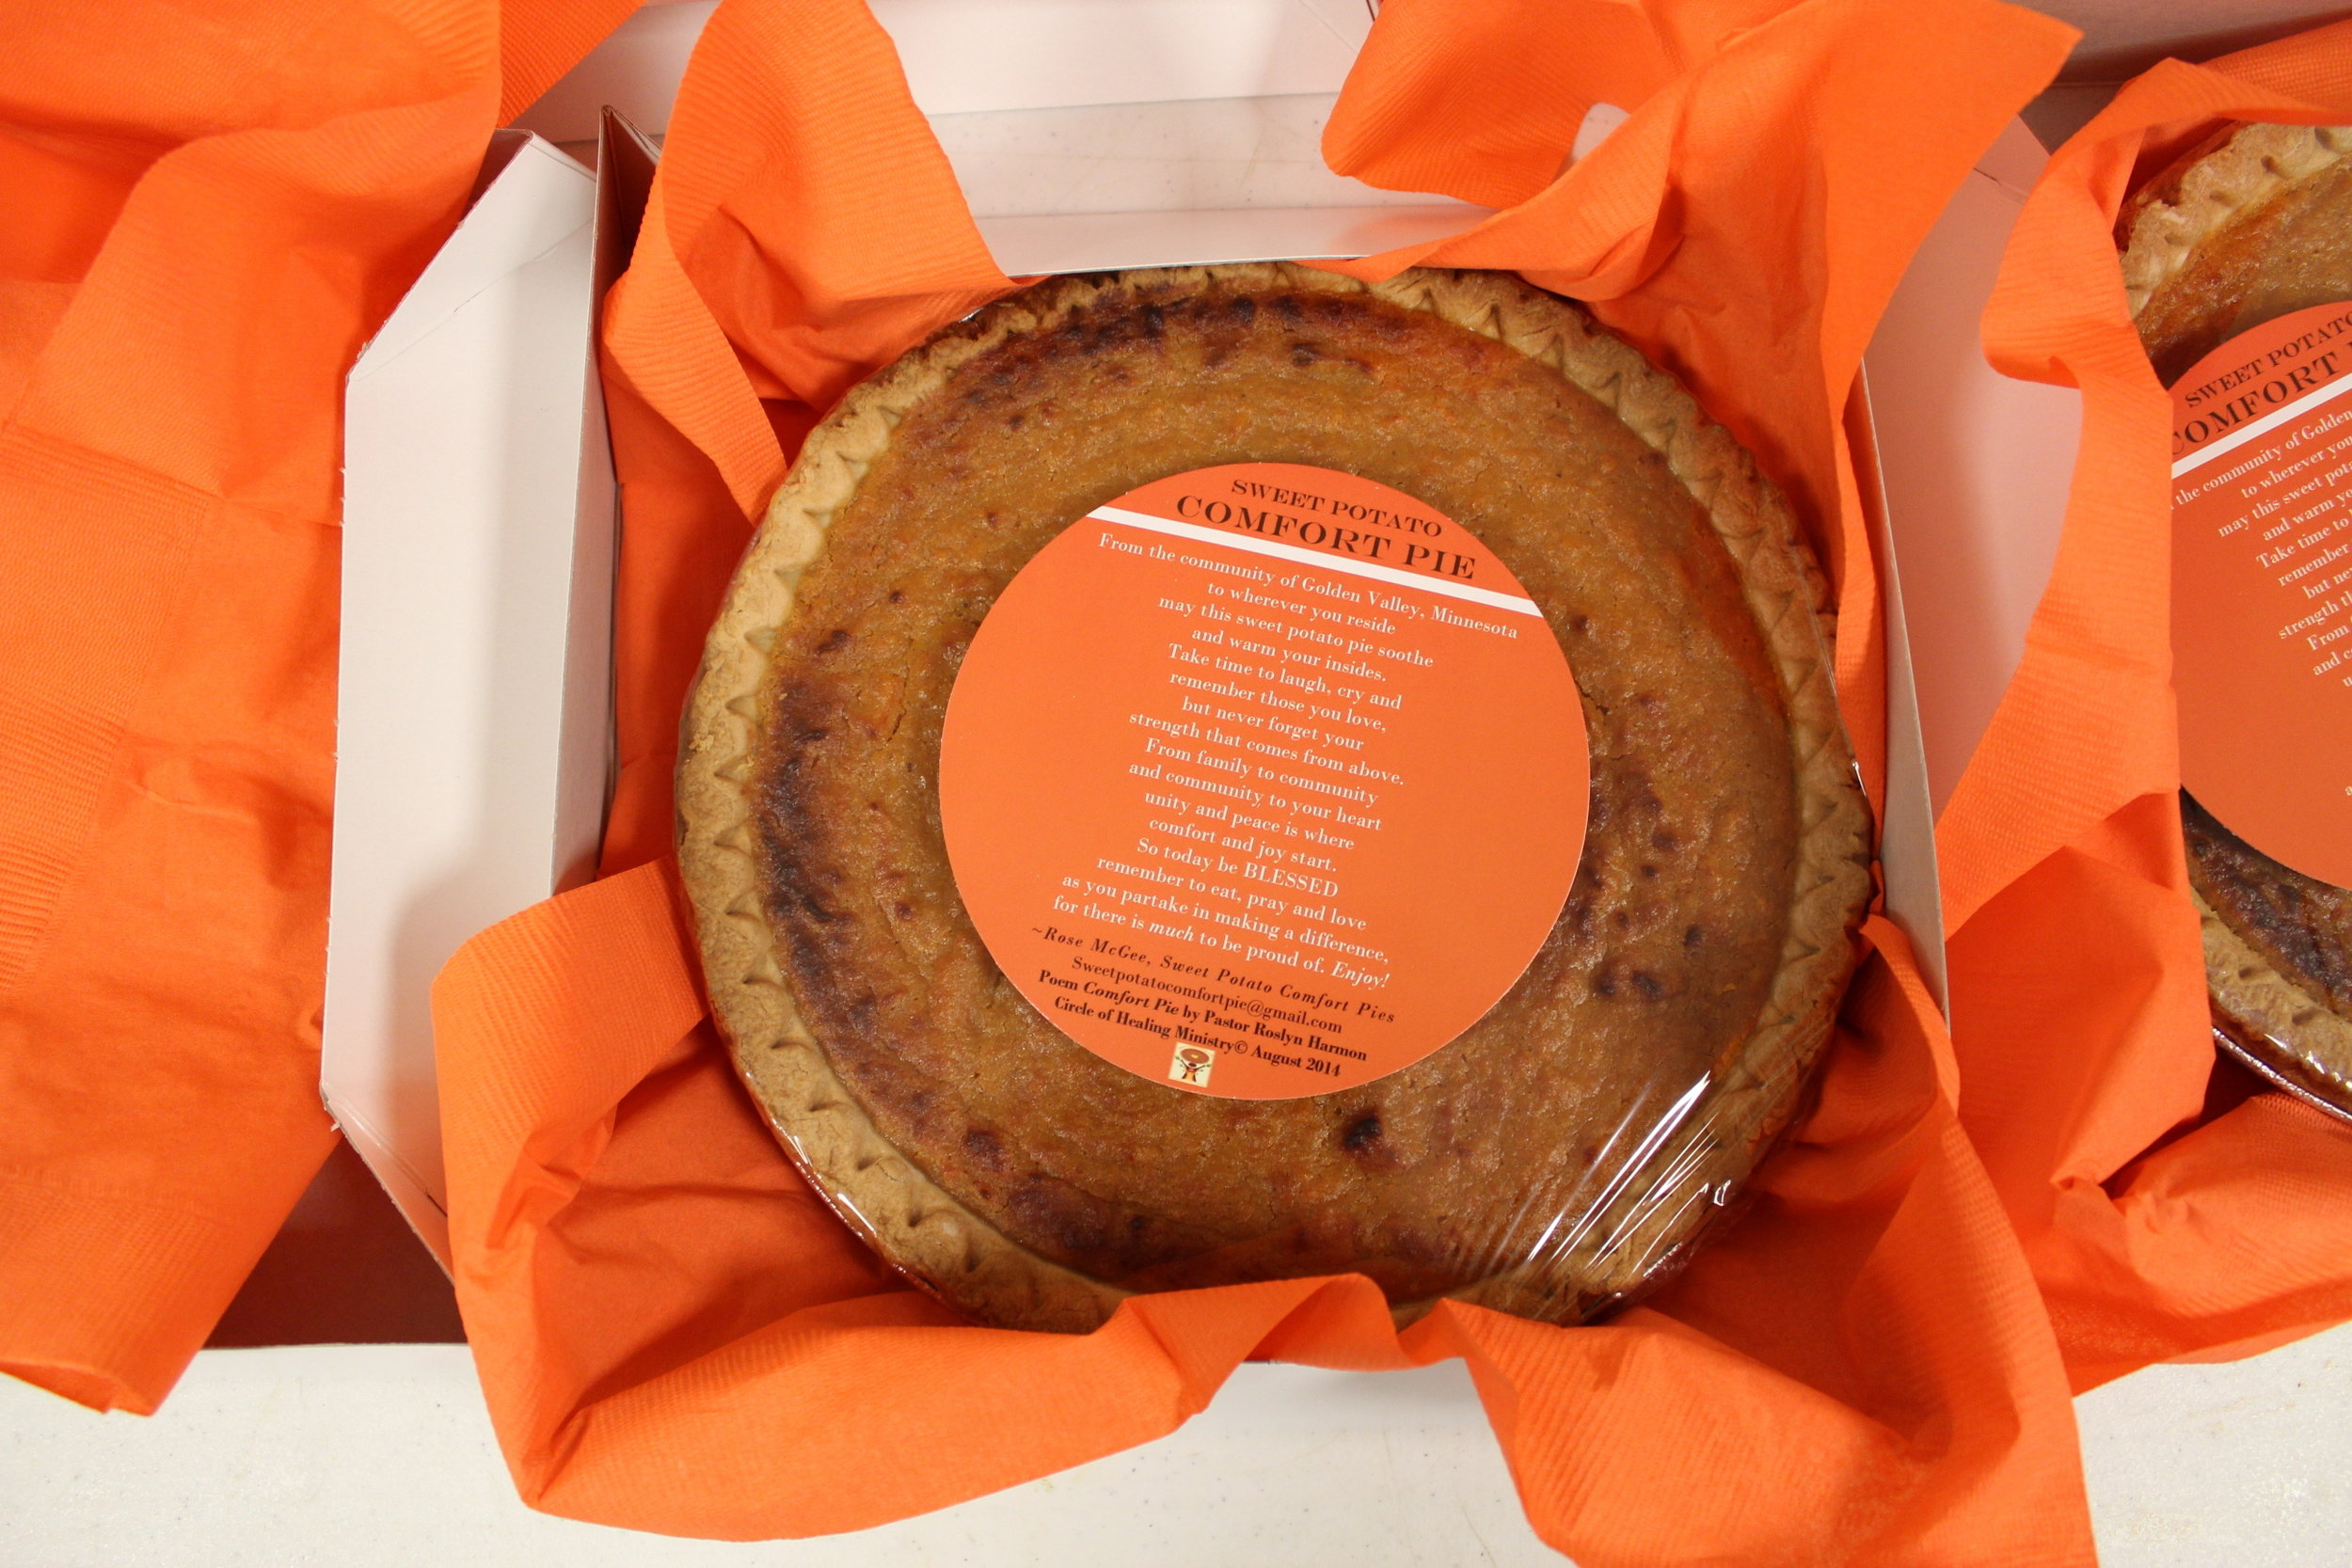 The Sweet Potato Comfort Pie Poem - Since it's inception, each Comfort Pie has been labeled with a Poem.